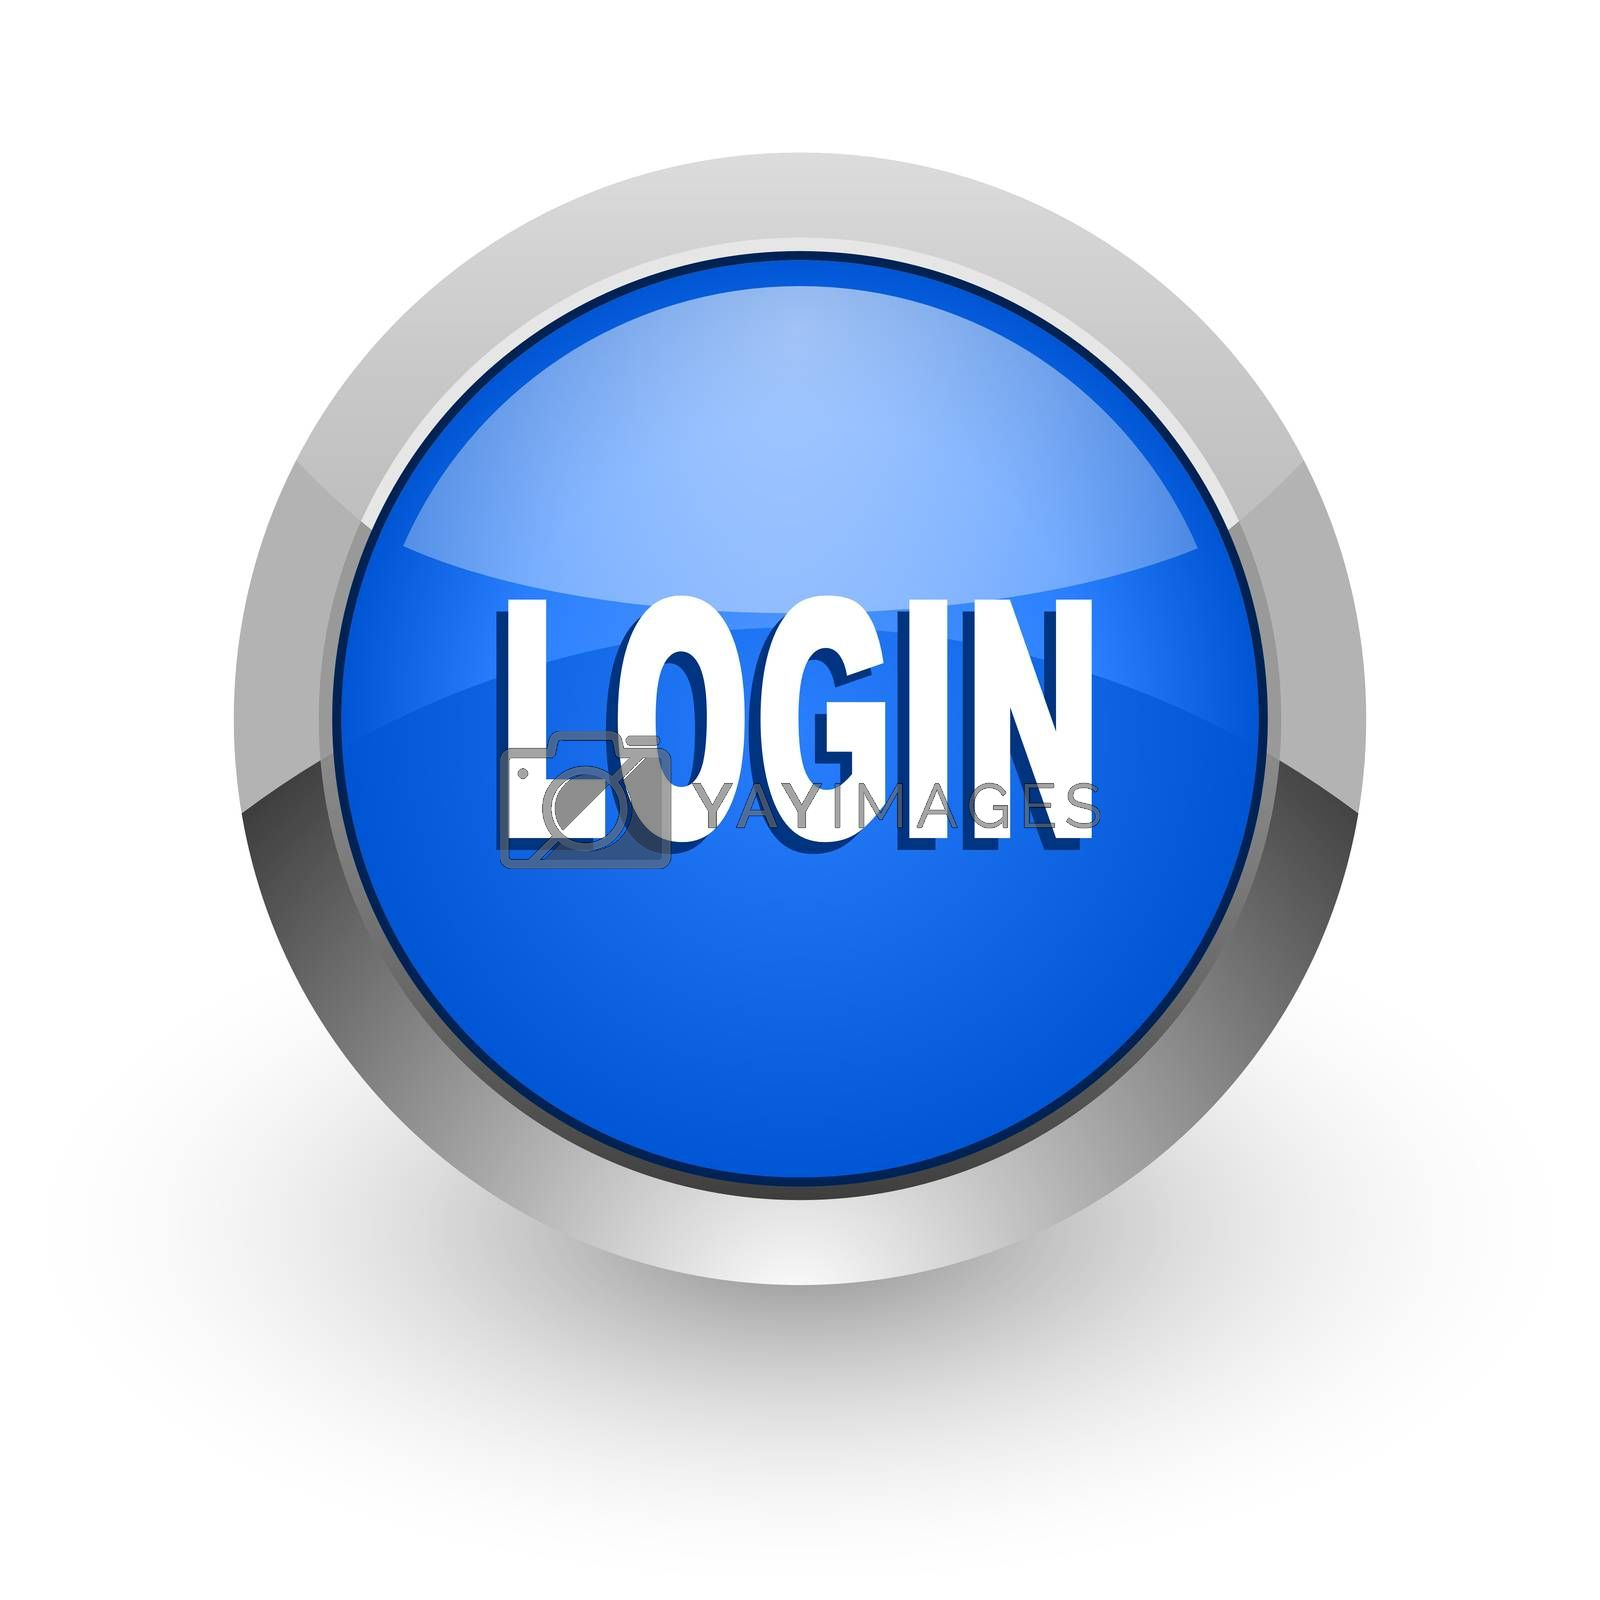 Royalty free image of login blue glossy web icon by alexwhite